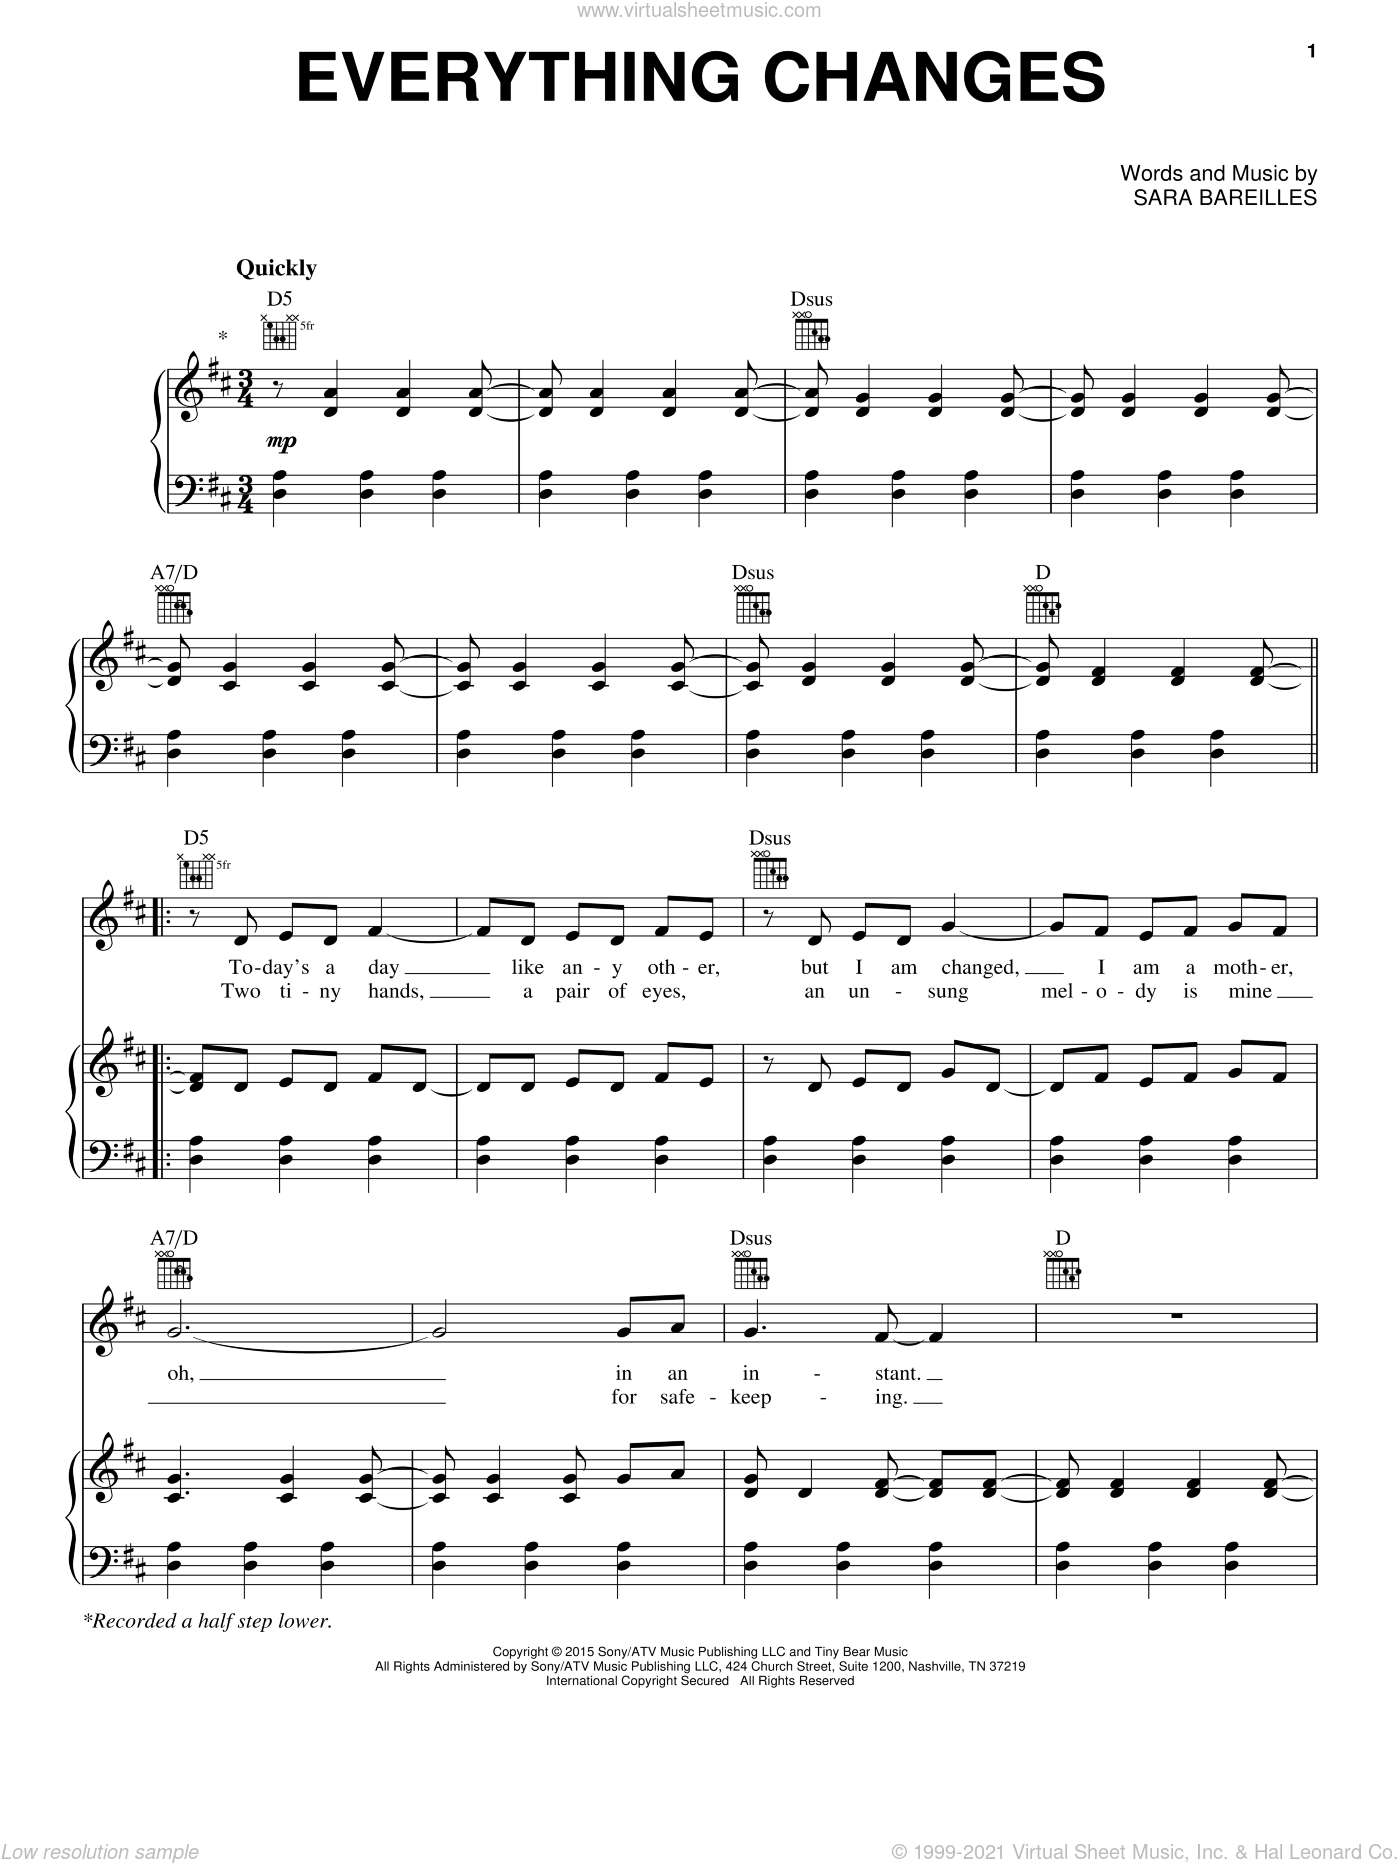 Everything Changes sheet music for voice, piano or guitar by Sara Bareilles. Score Image Preview.